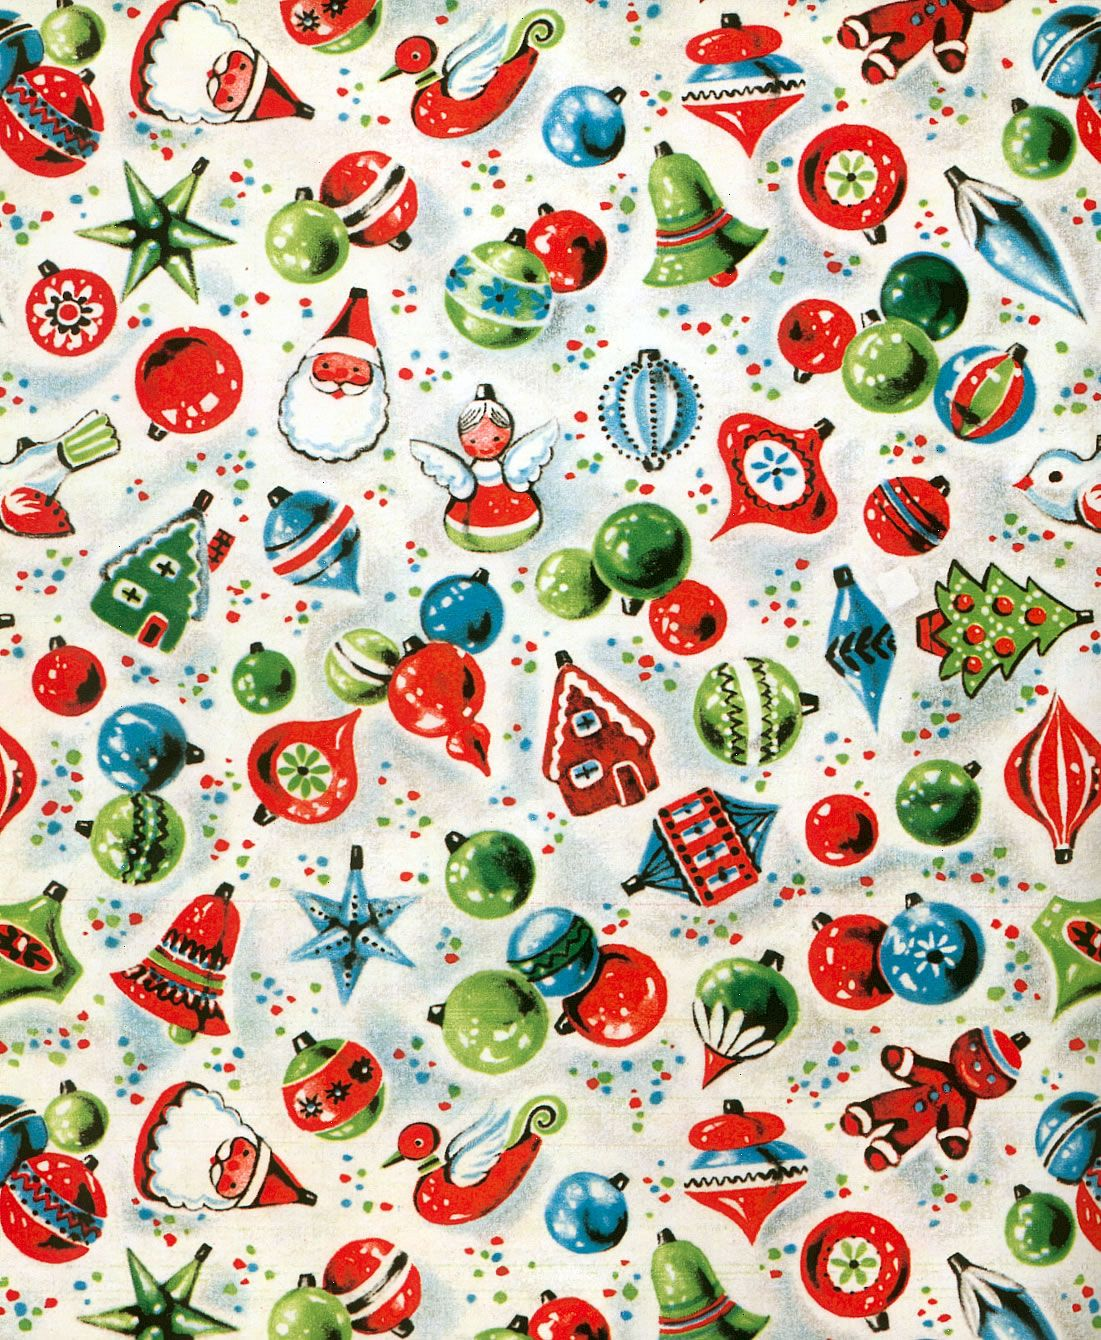 christmas wrapping paper love the retro designs we used to buy our christmas paper in folded packages with designs a lot like this one i miss those days - Christmas Paper